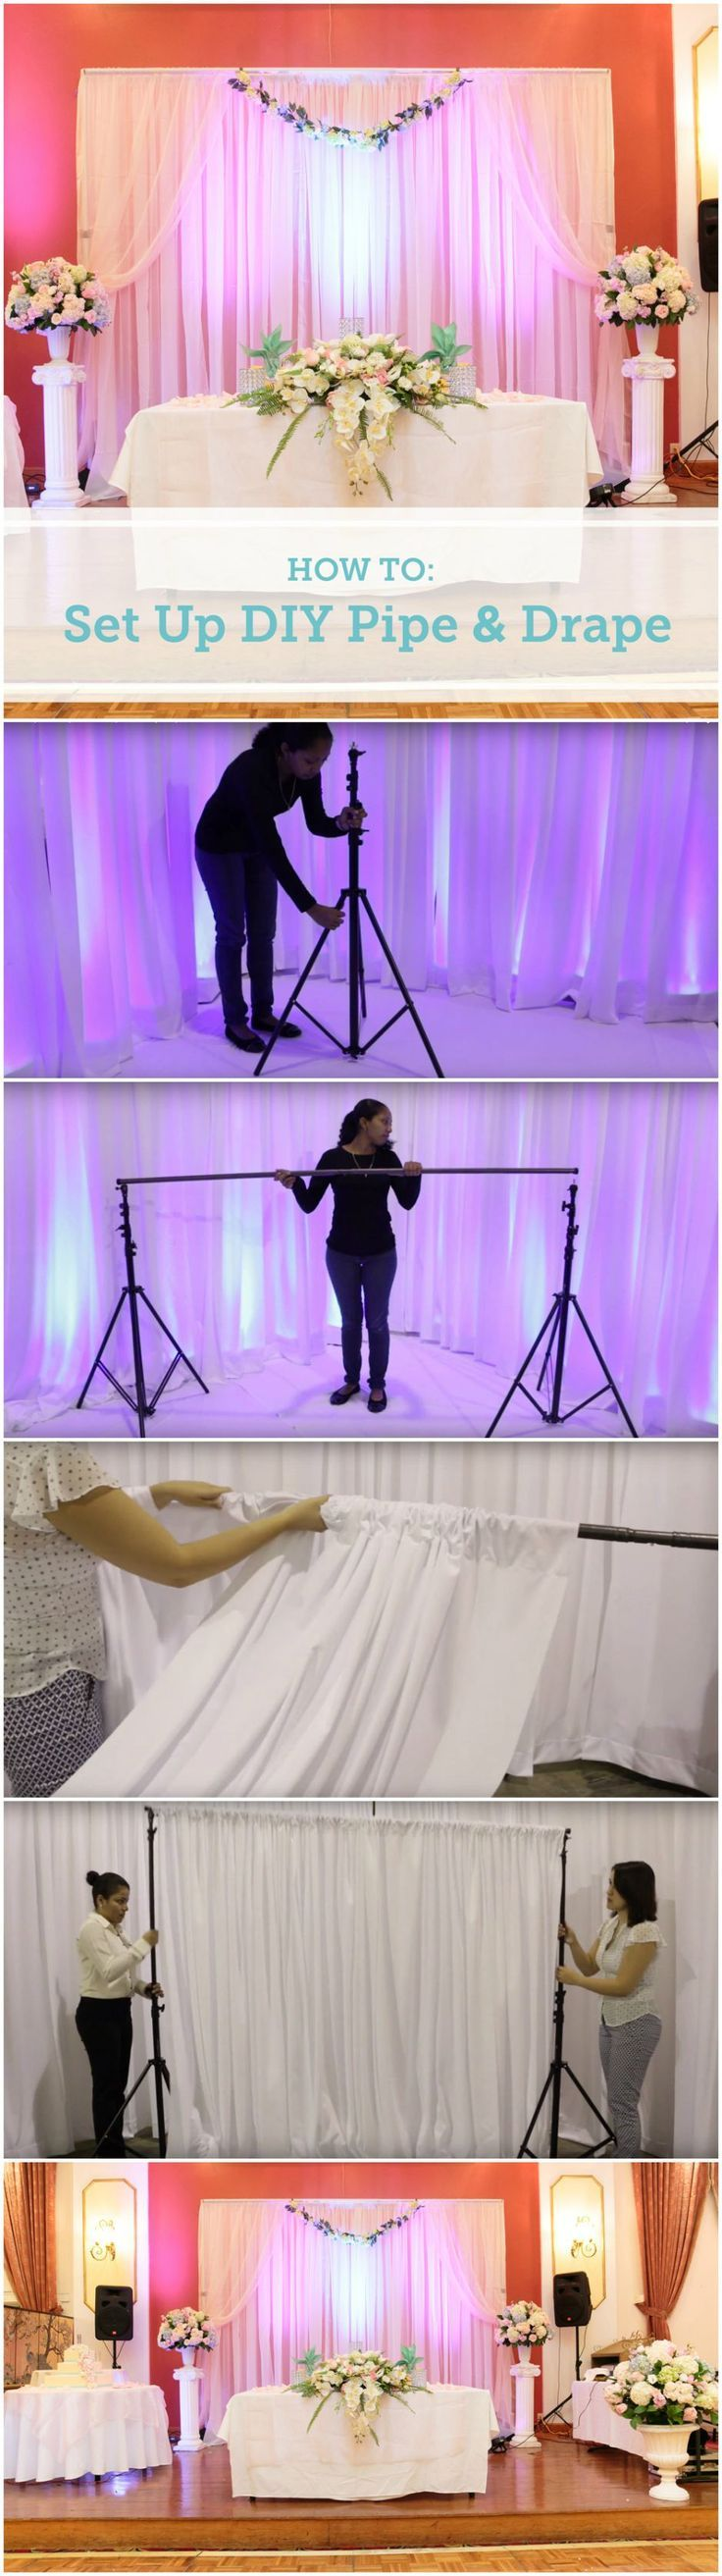 Setting up the DIY Pipe and Drape kits from @Rent My Wedding http://thebudgetsavvybride.com/how-to-set-up-a-diy-wedding-backdrop/